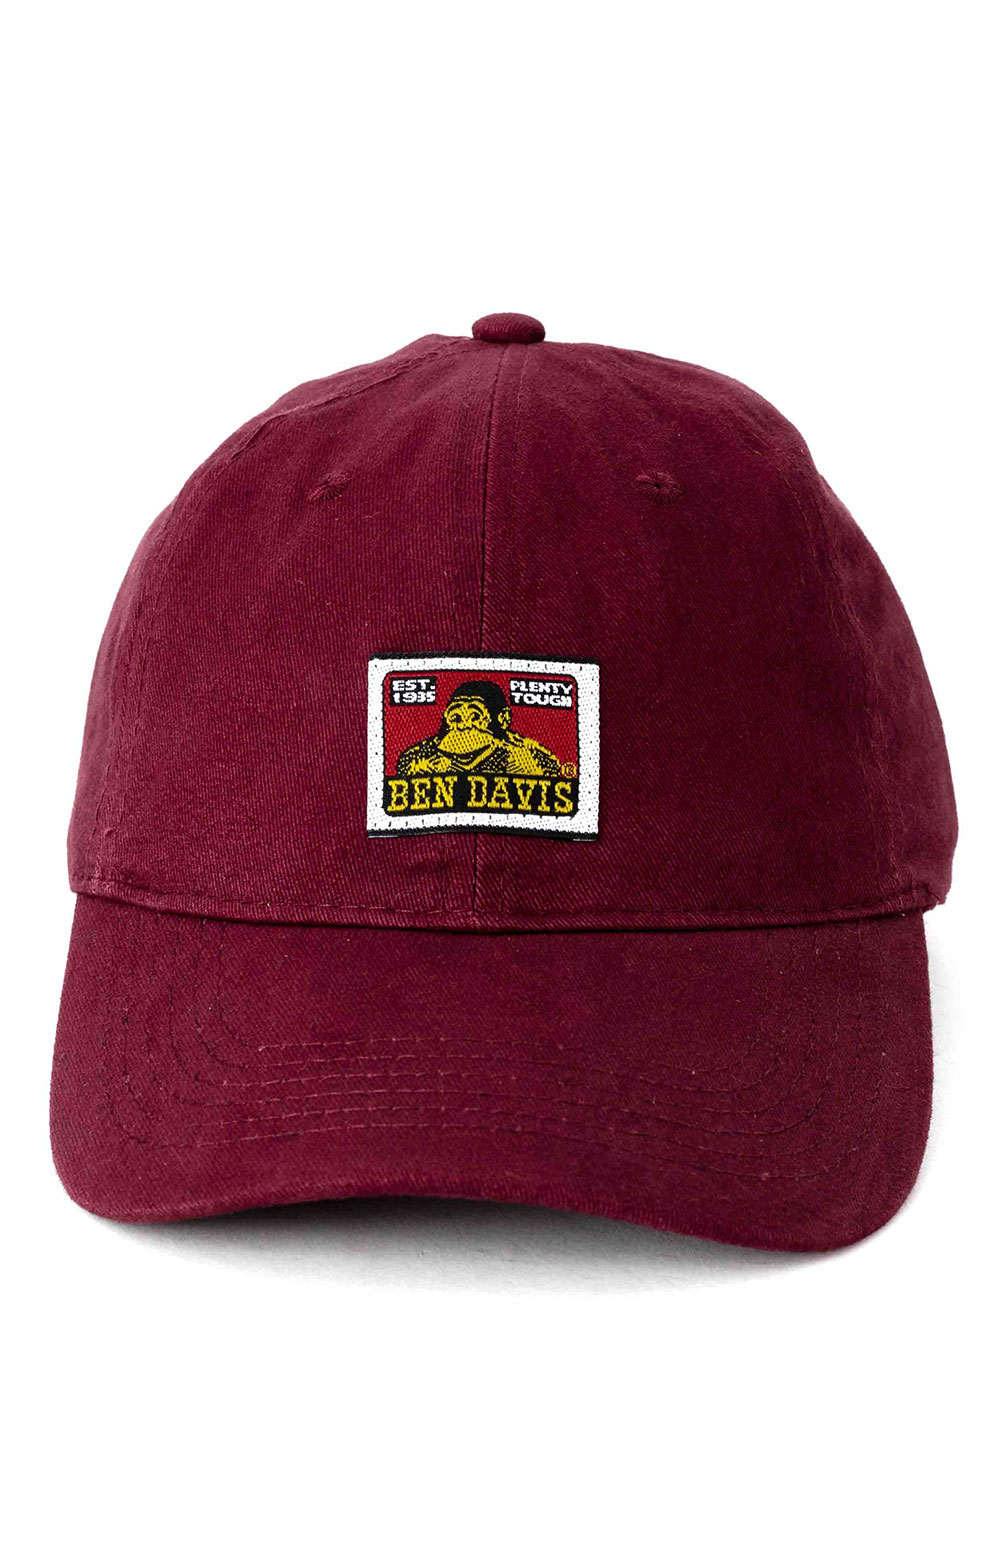 Unstructured Ball Cap - Burgundy 2